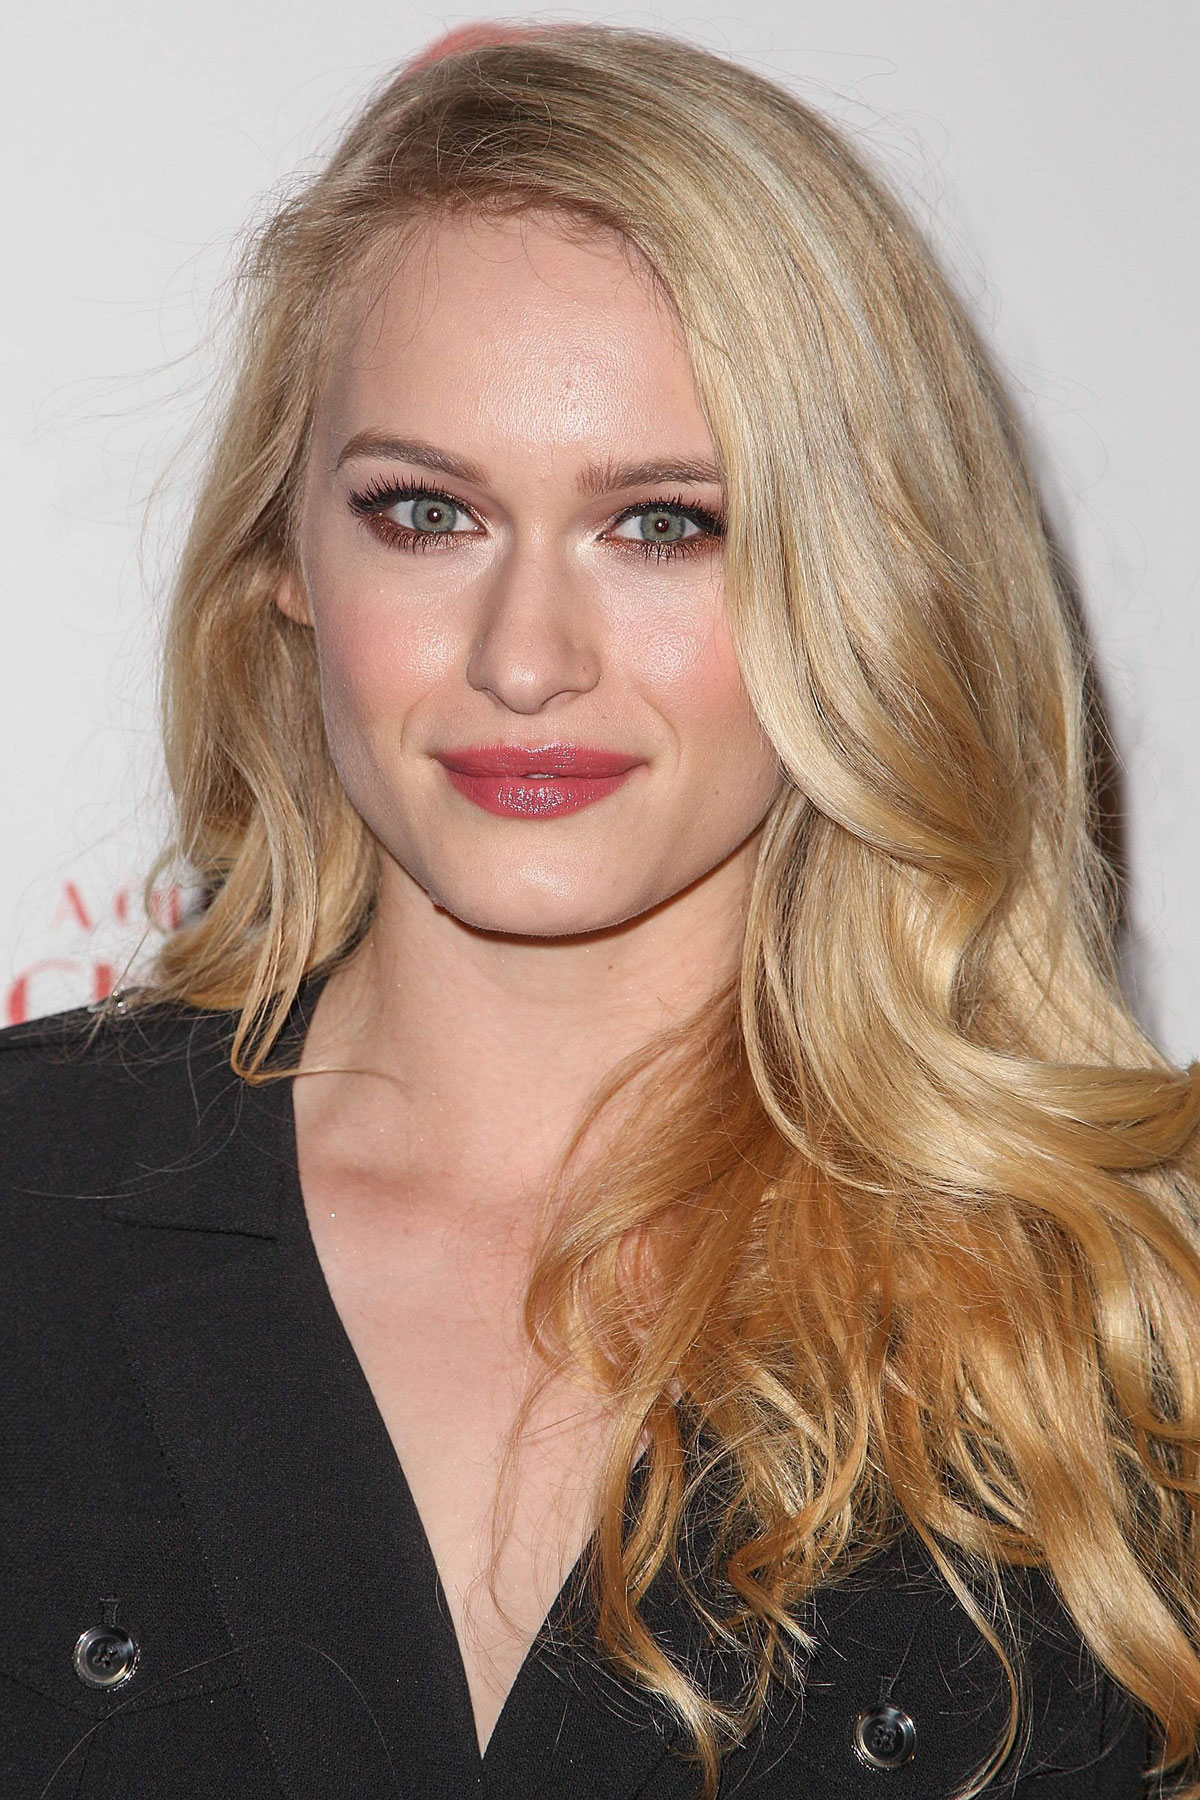 LEVEN RAMBIN at A Glimpse Inside the Mind of Charles Swan III Premiere in Hollywood